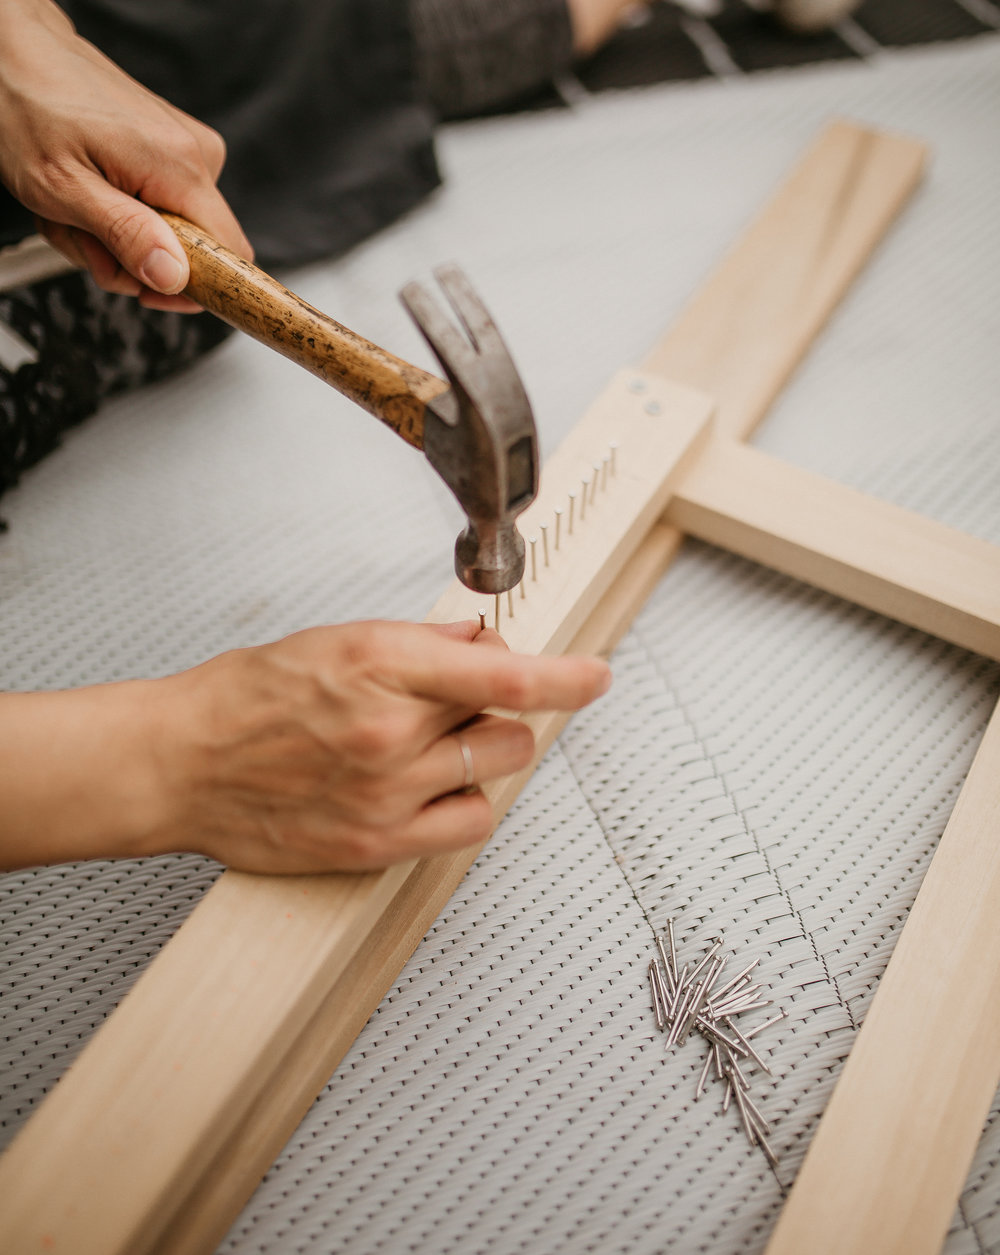 g. Then hammer away! Be sure to use finishing nails so that the weaving will be relatively easy to take off the loom when you're finished.